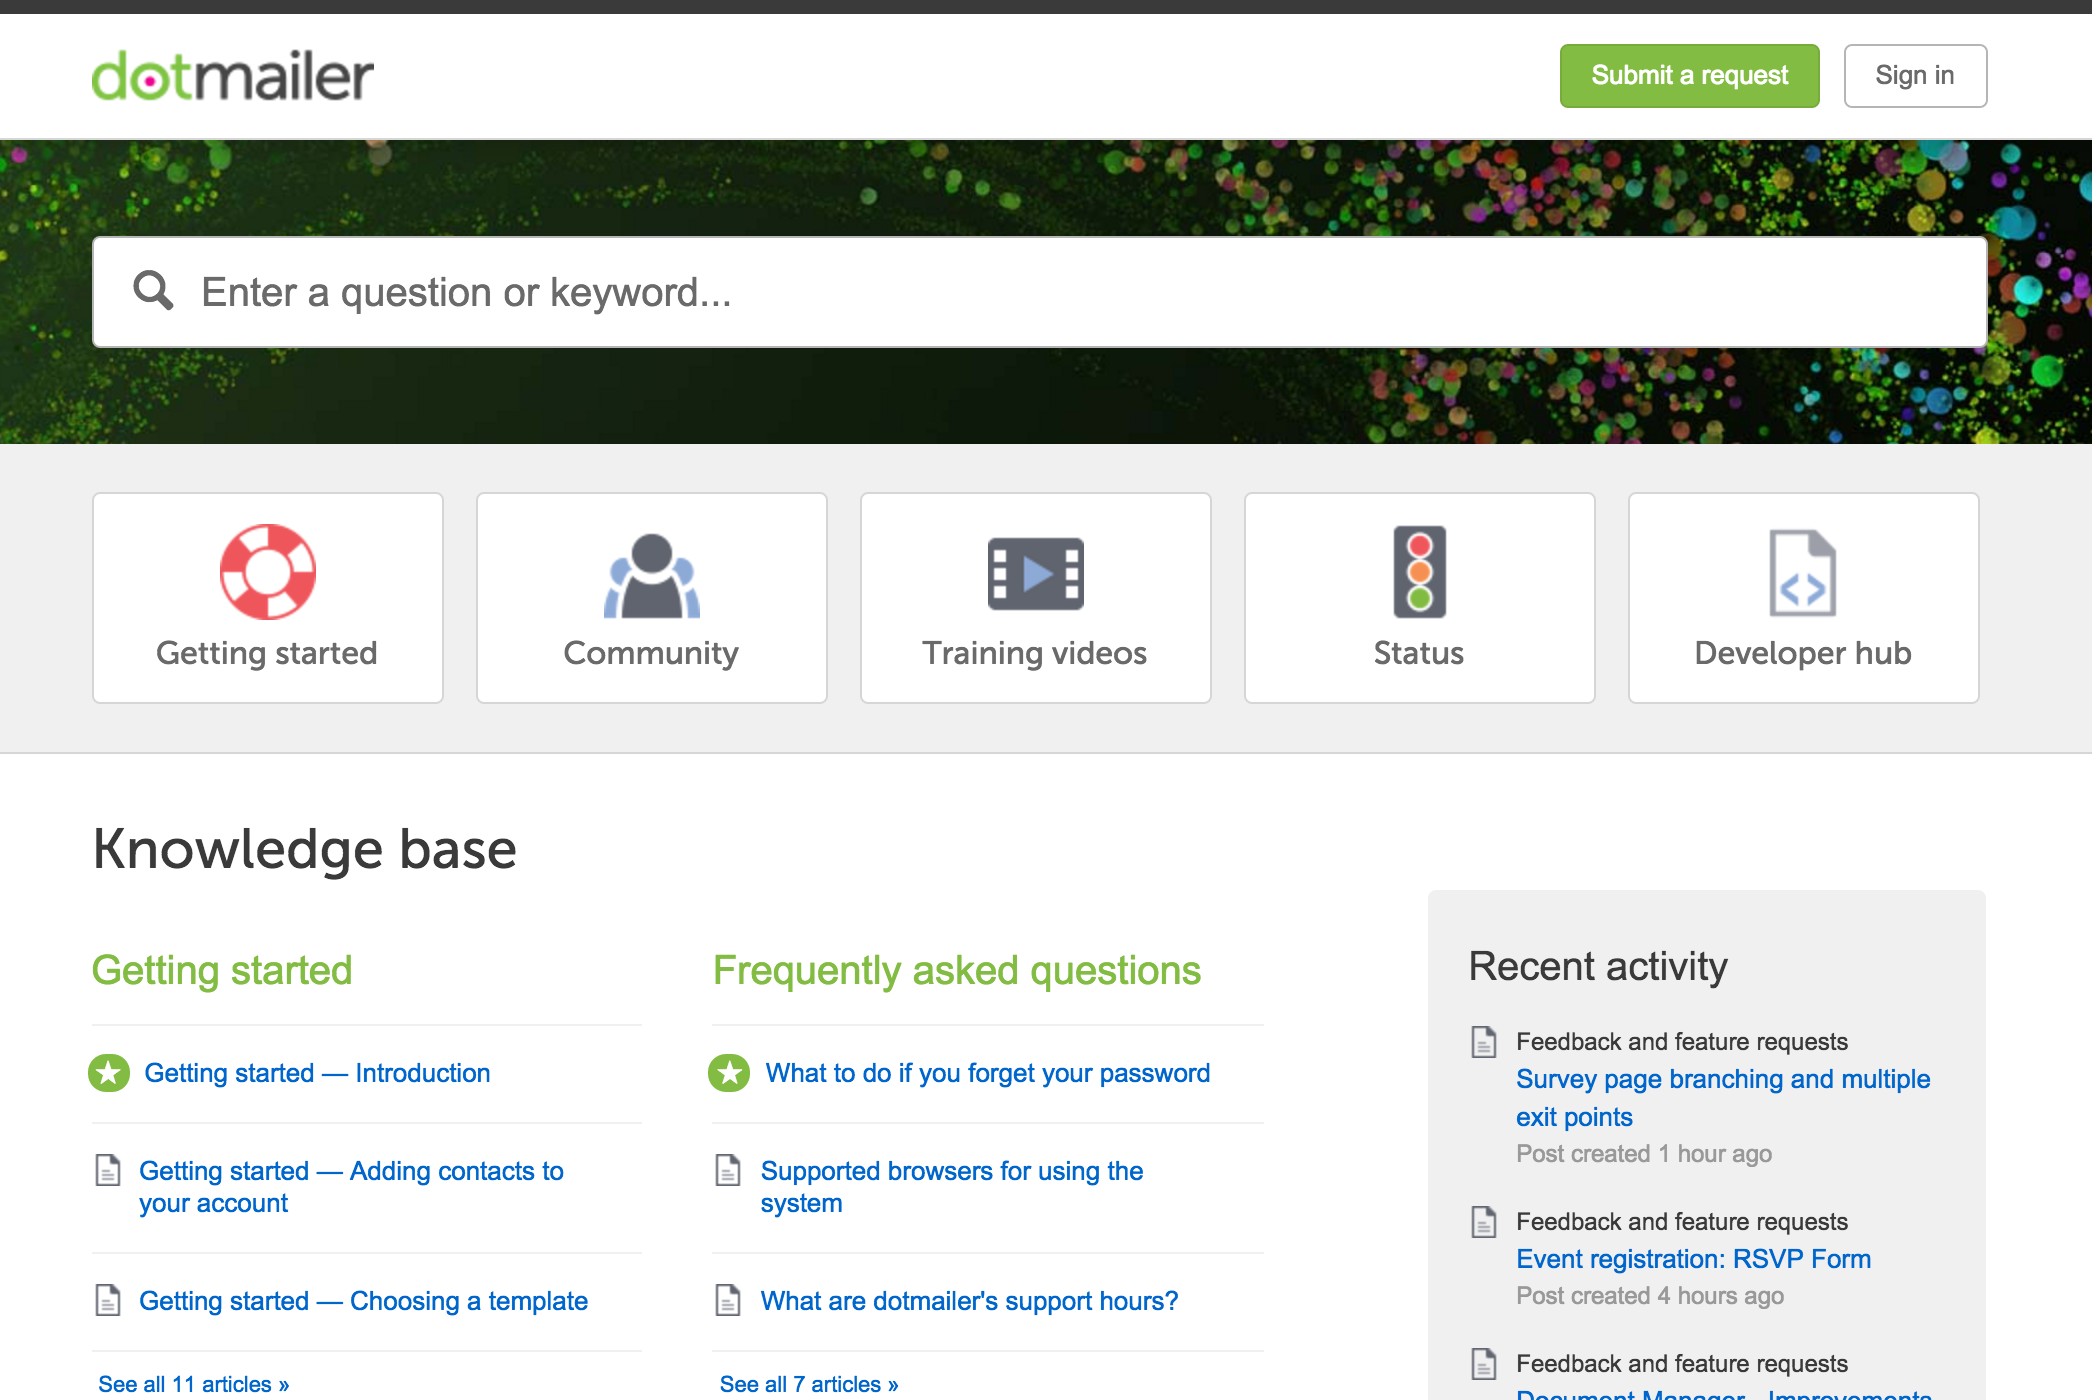 Clear icons make it easy to navigate the @dotmailer Help Center ...